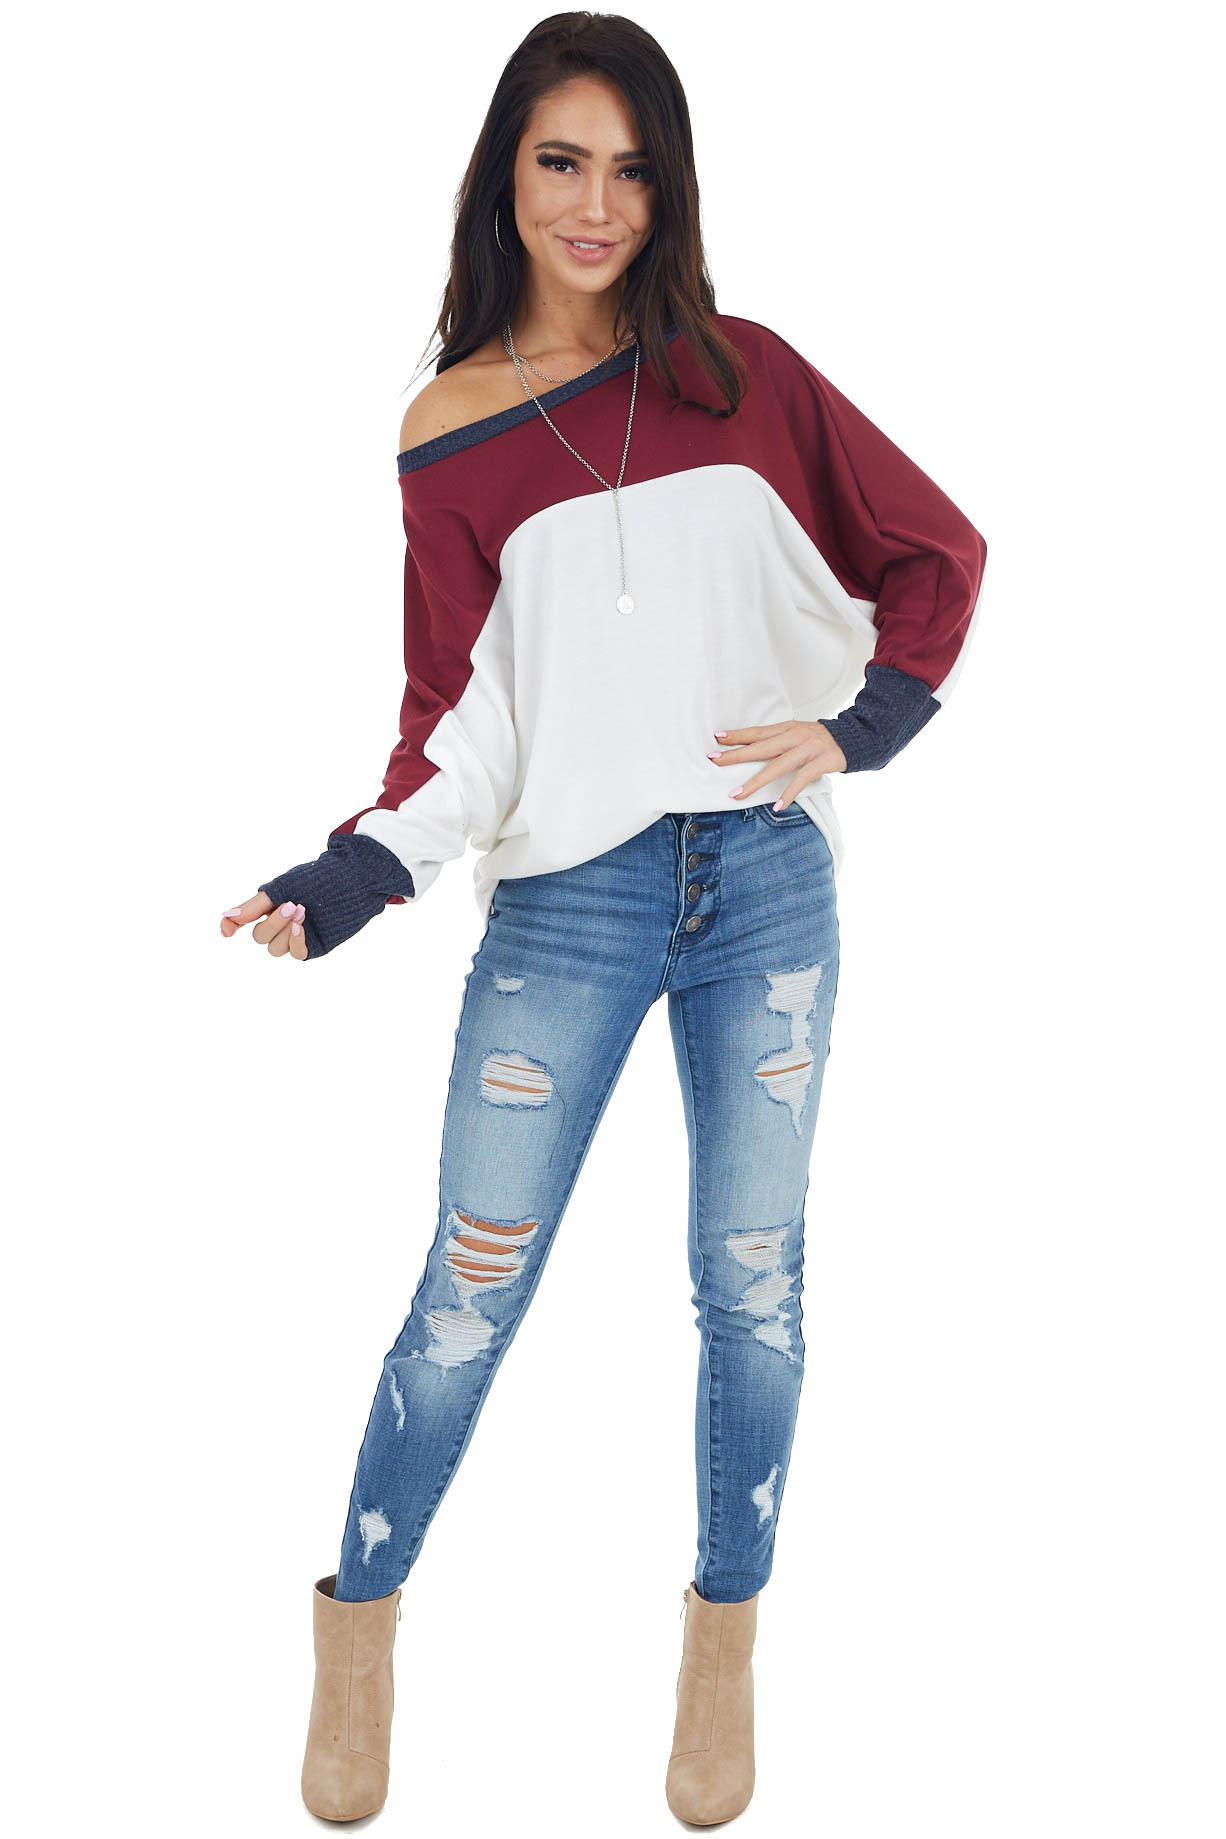 Ivory and Wine Colorblock Knit Top with Long Dolman Sleeves